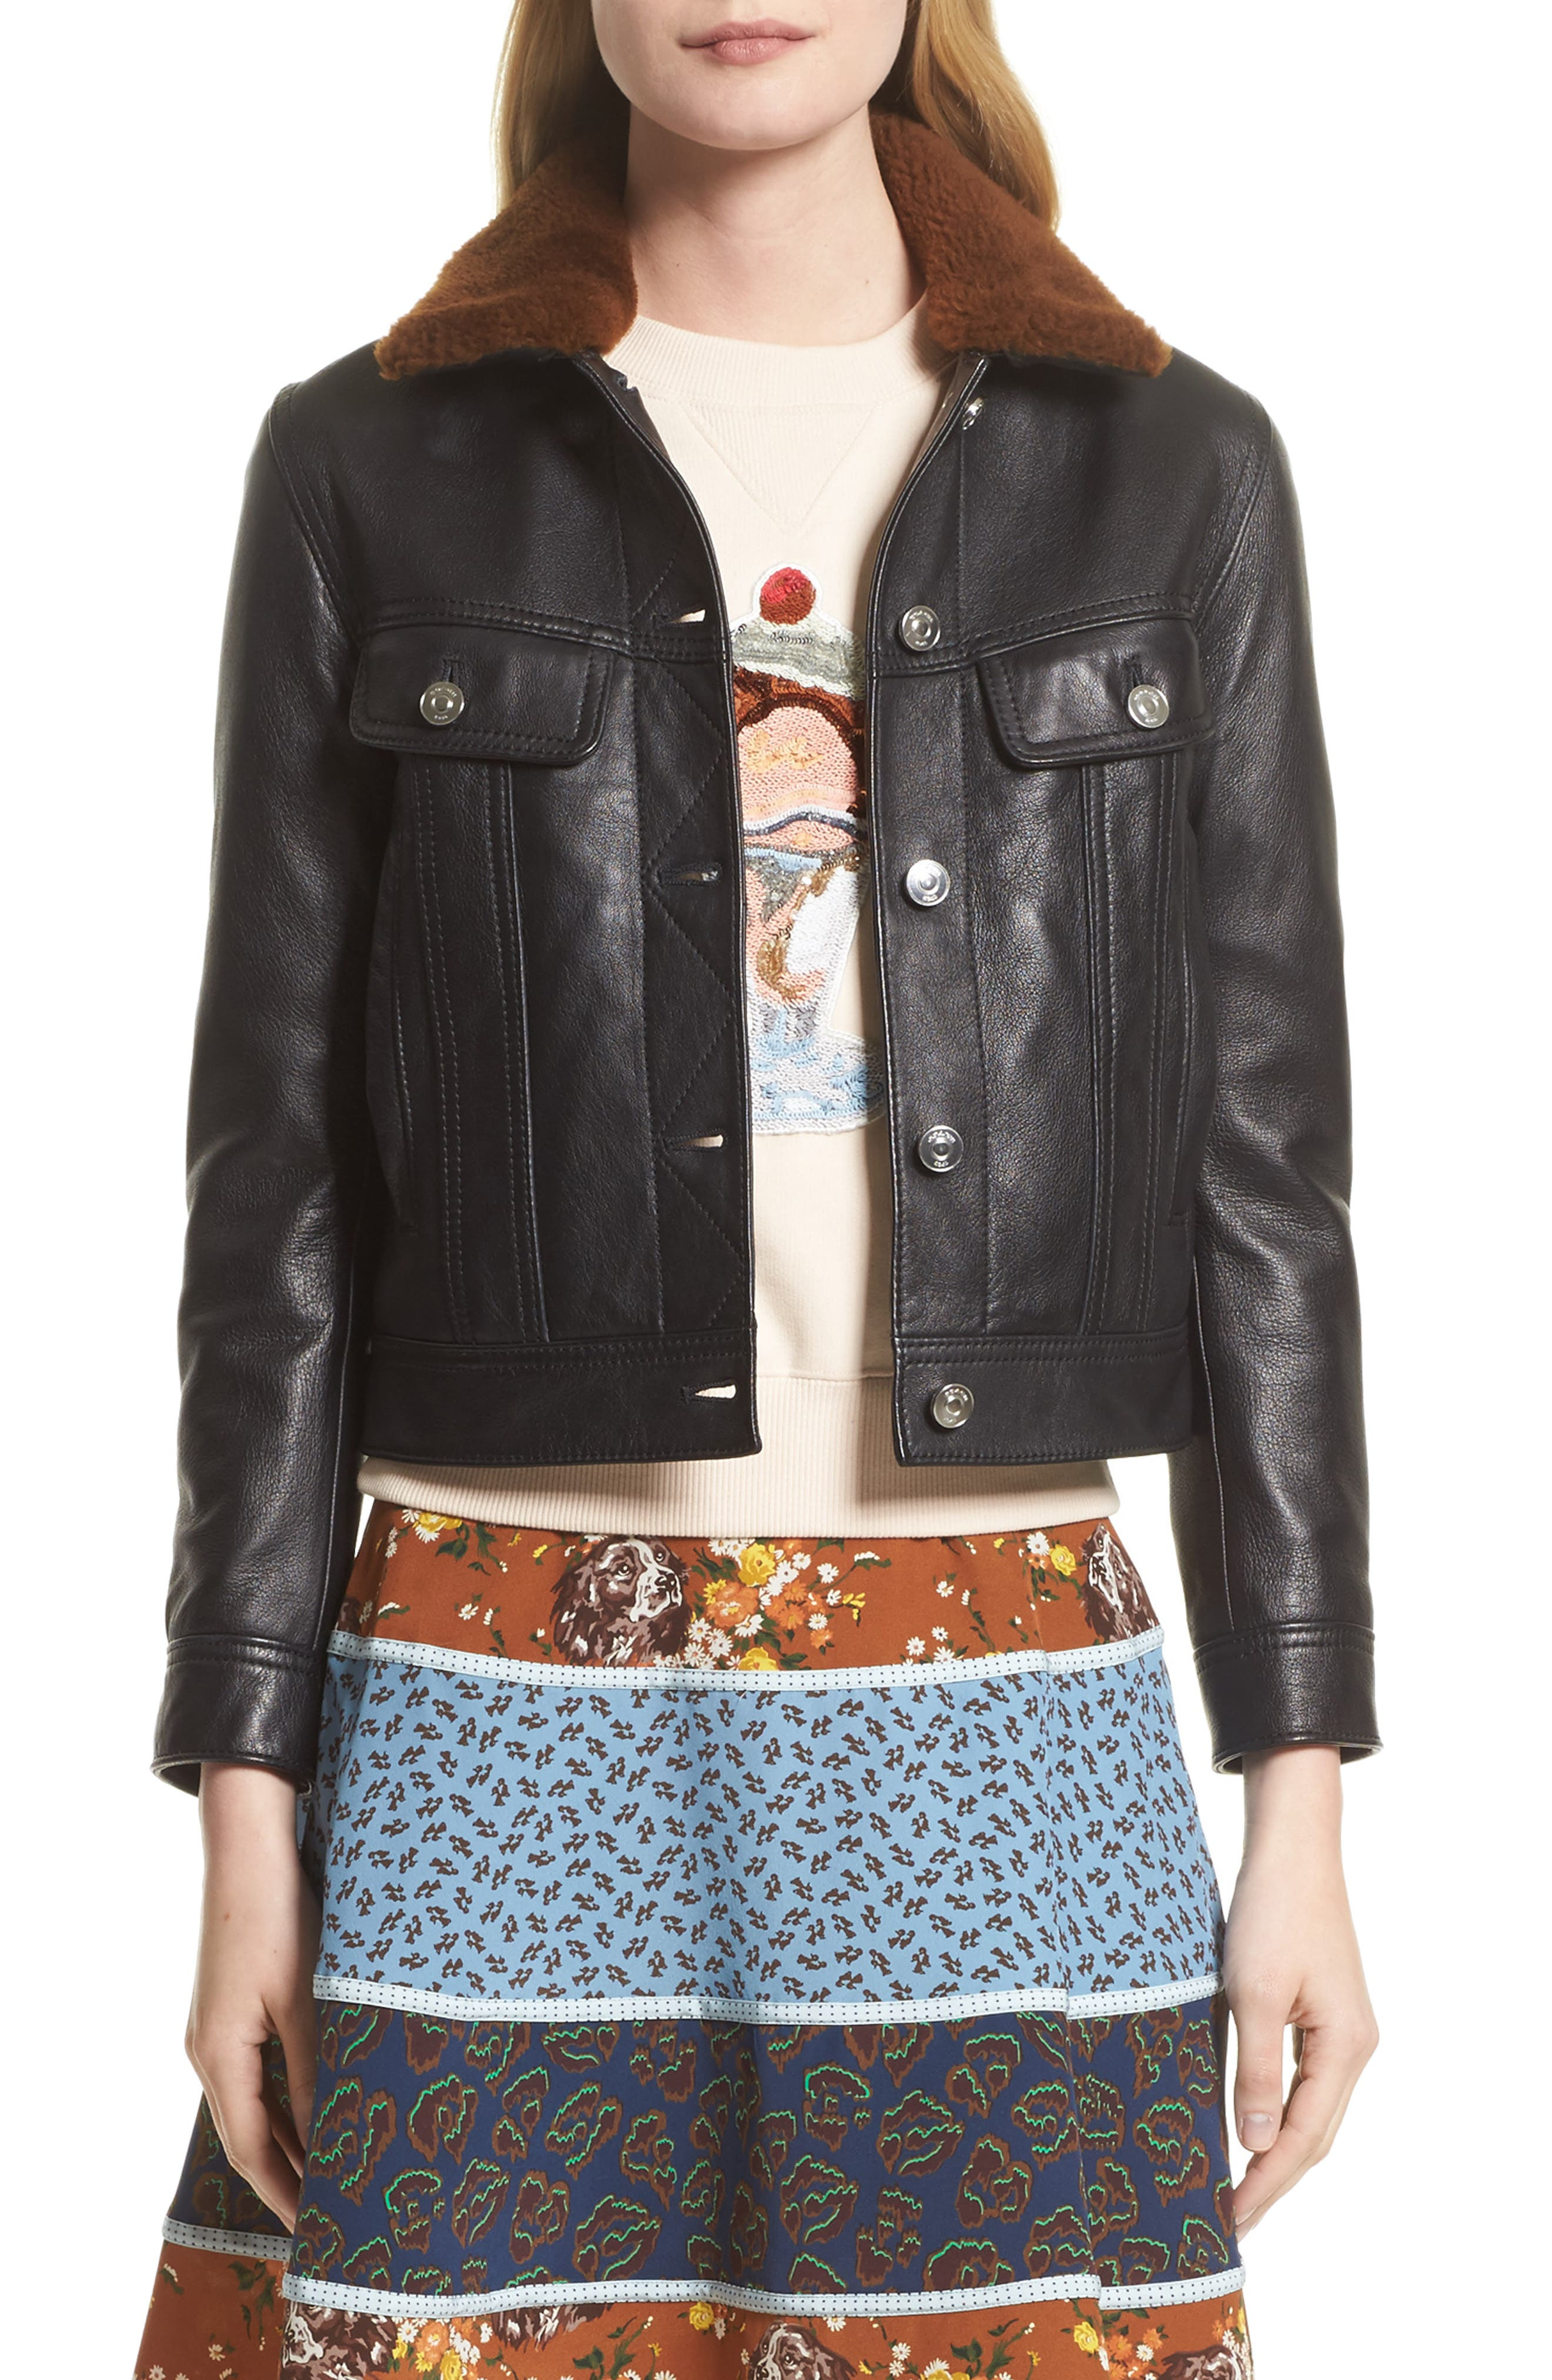 COACH 1941 Leather Trucker Jacket with Removable Genuine Shearling Collar